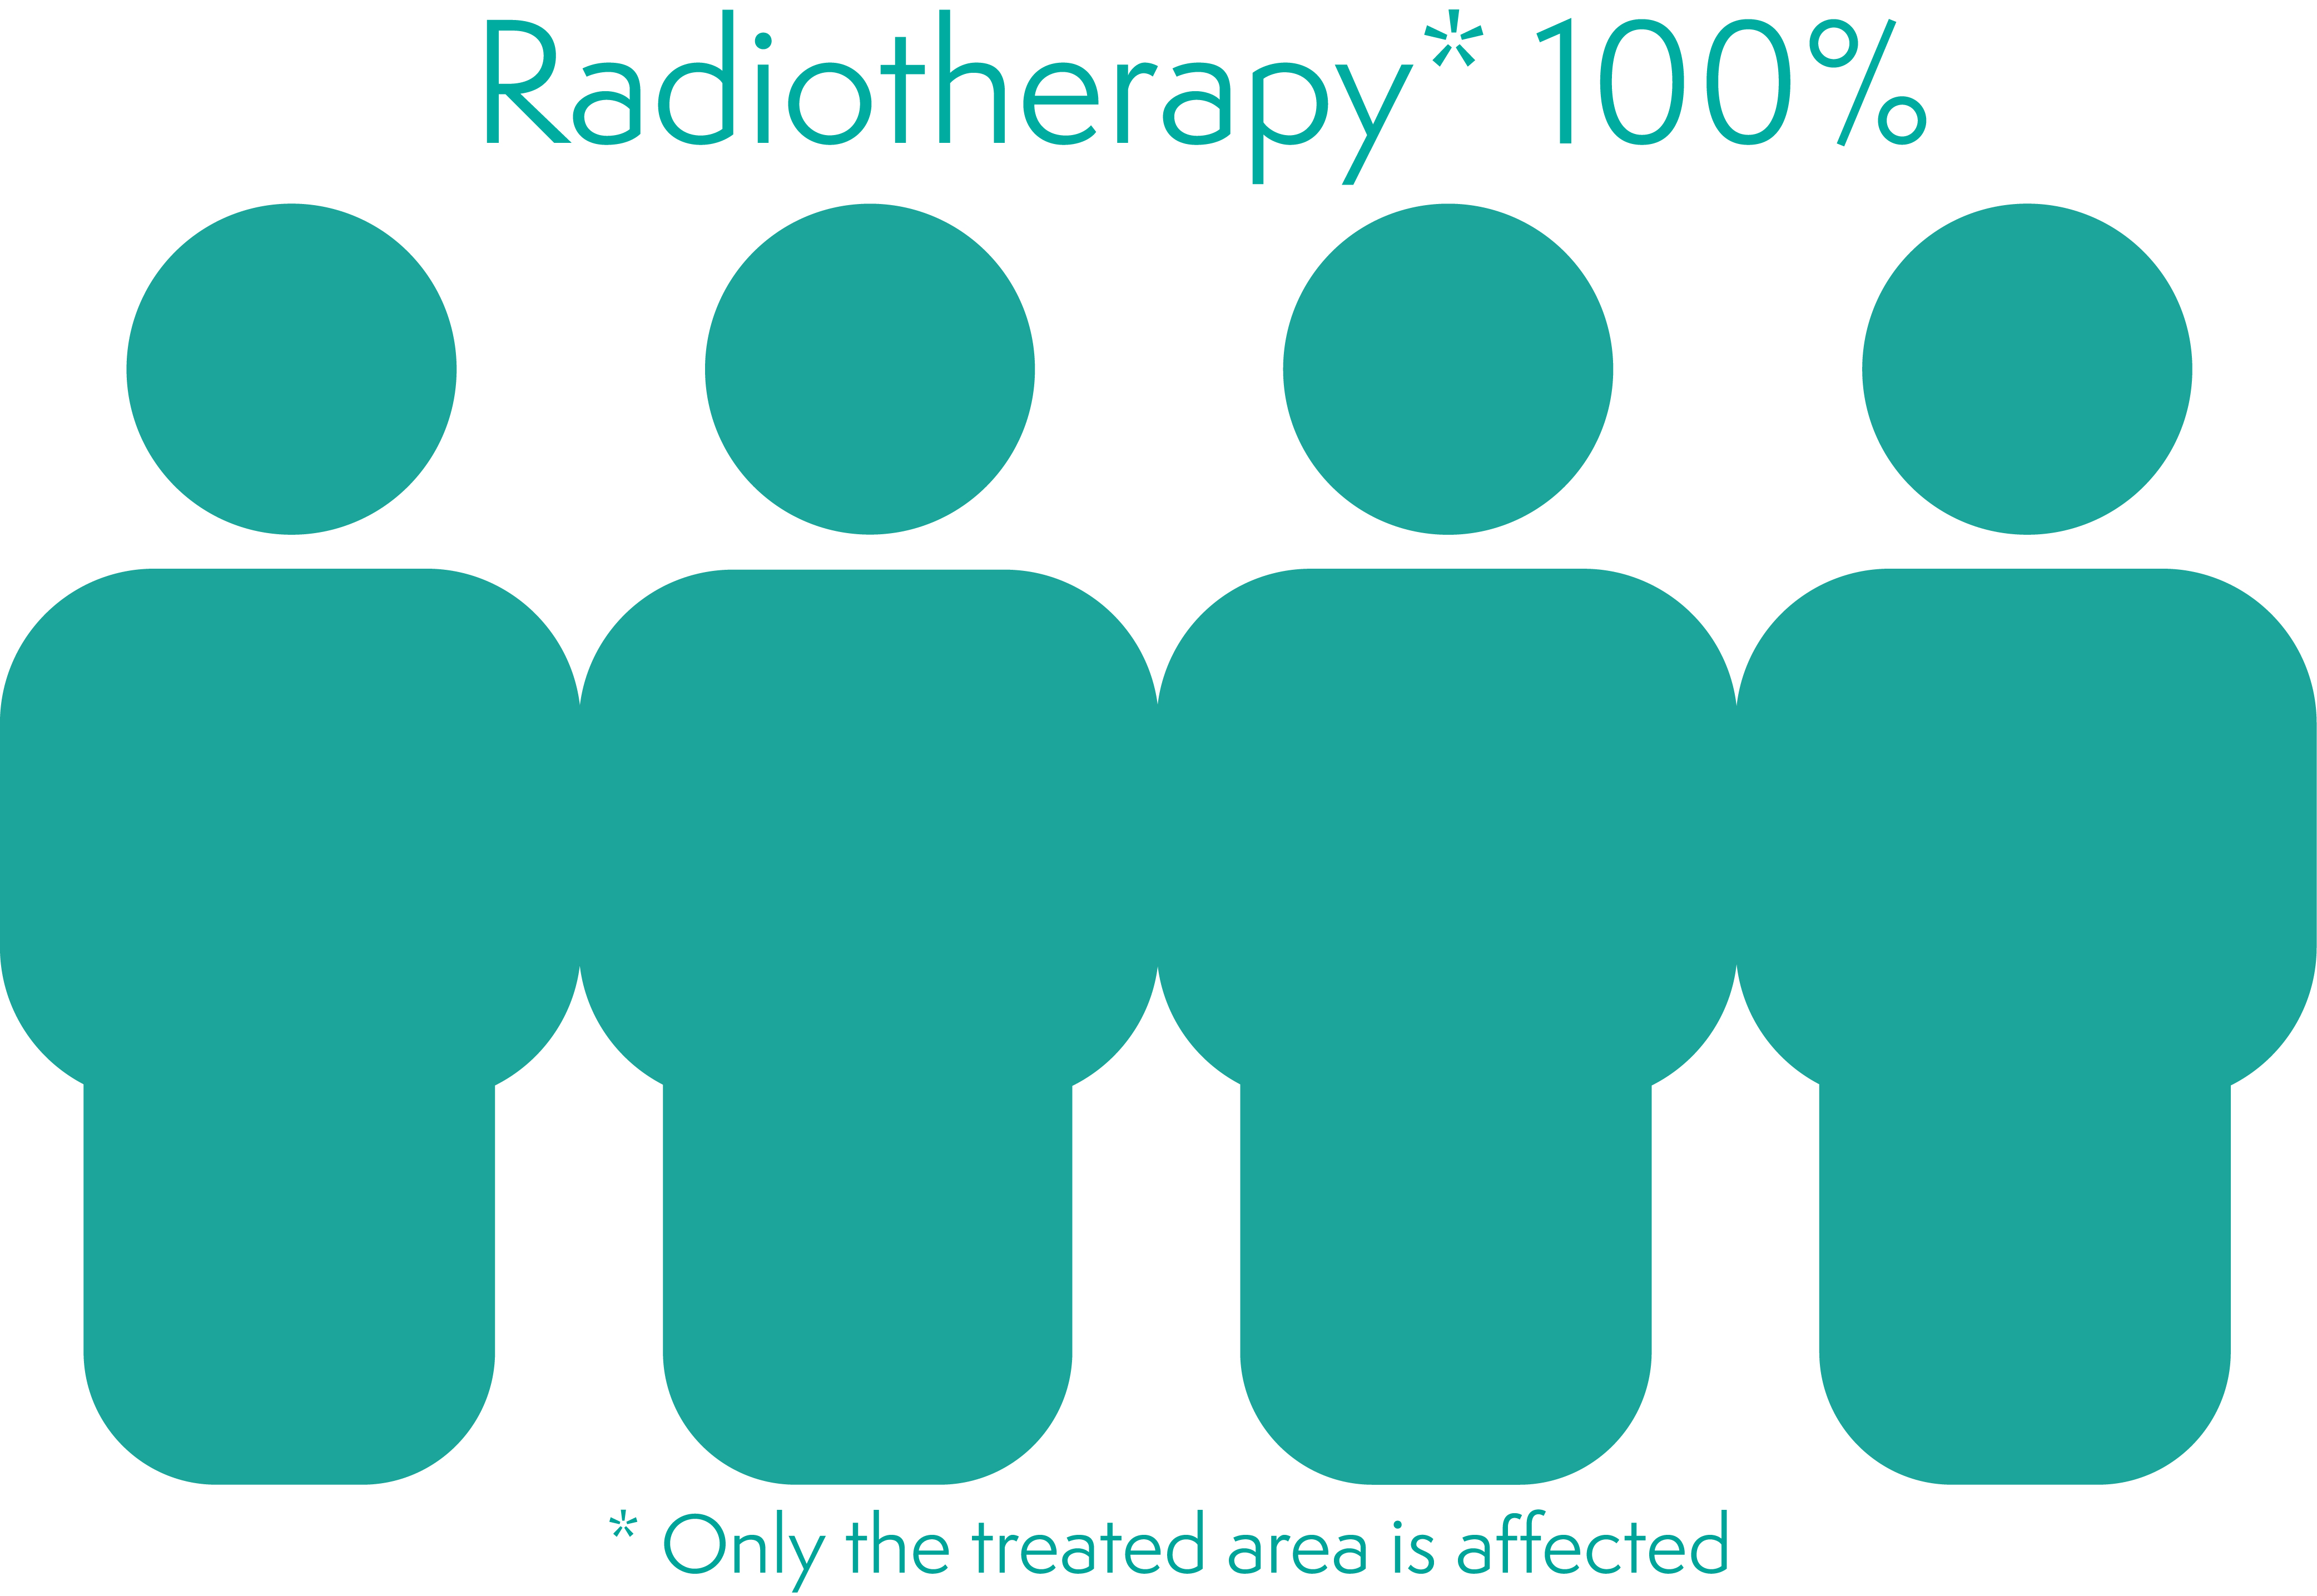 Figure showing 100% chance of hair loss with radiotherapy on area treated